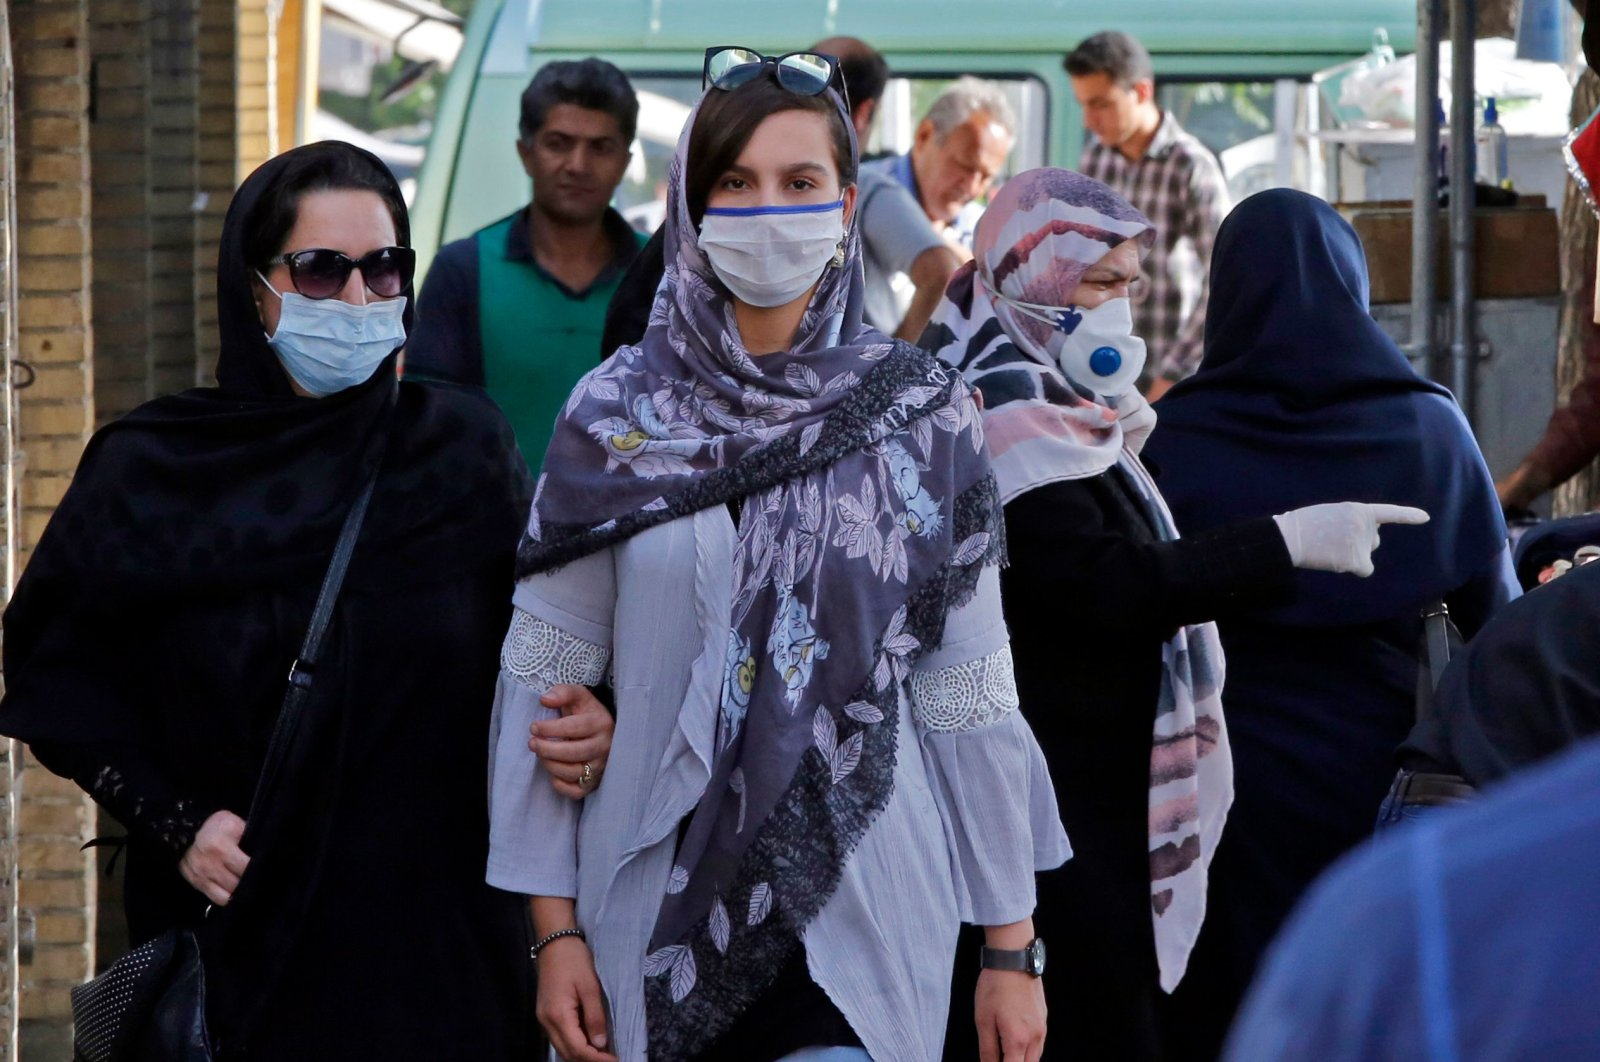 Iranians, some wearing face masks, walk at a market in the capital Tehran, June 3, 2020. (AFP Photo)